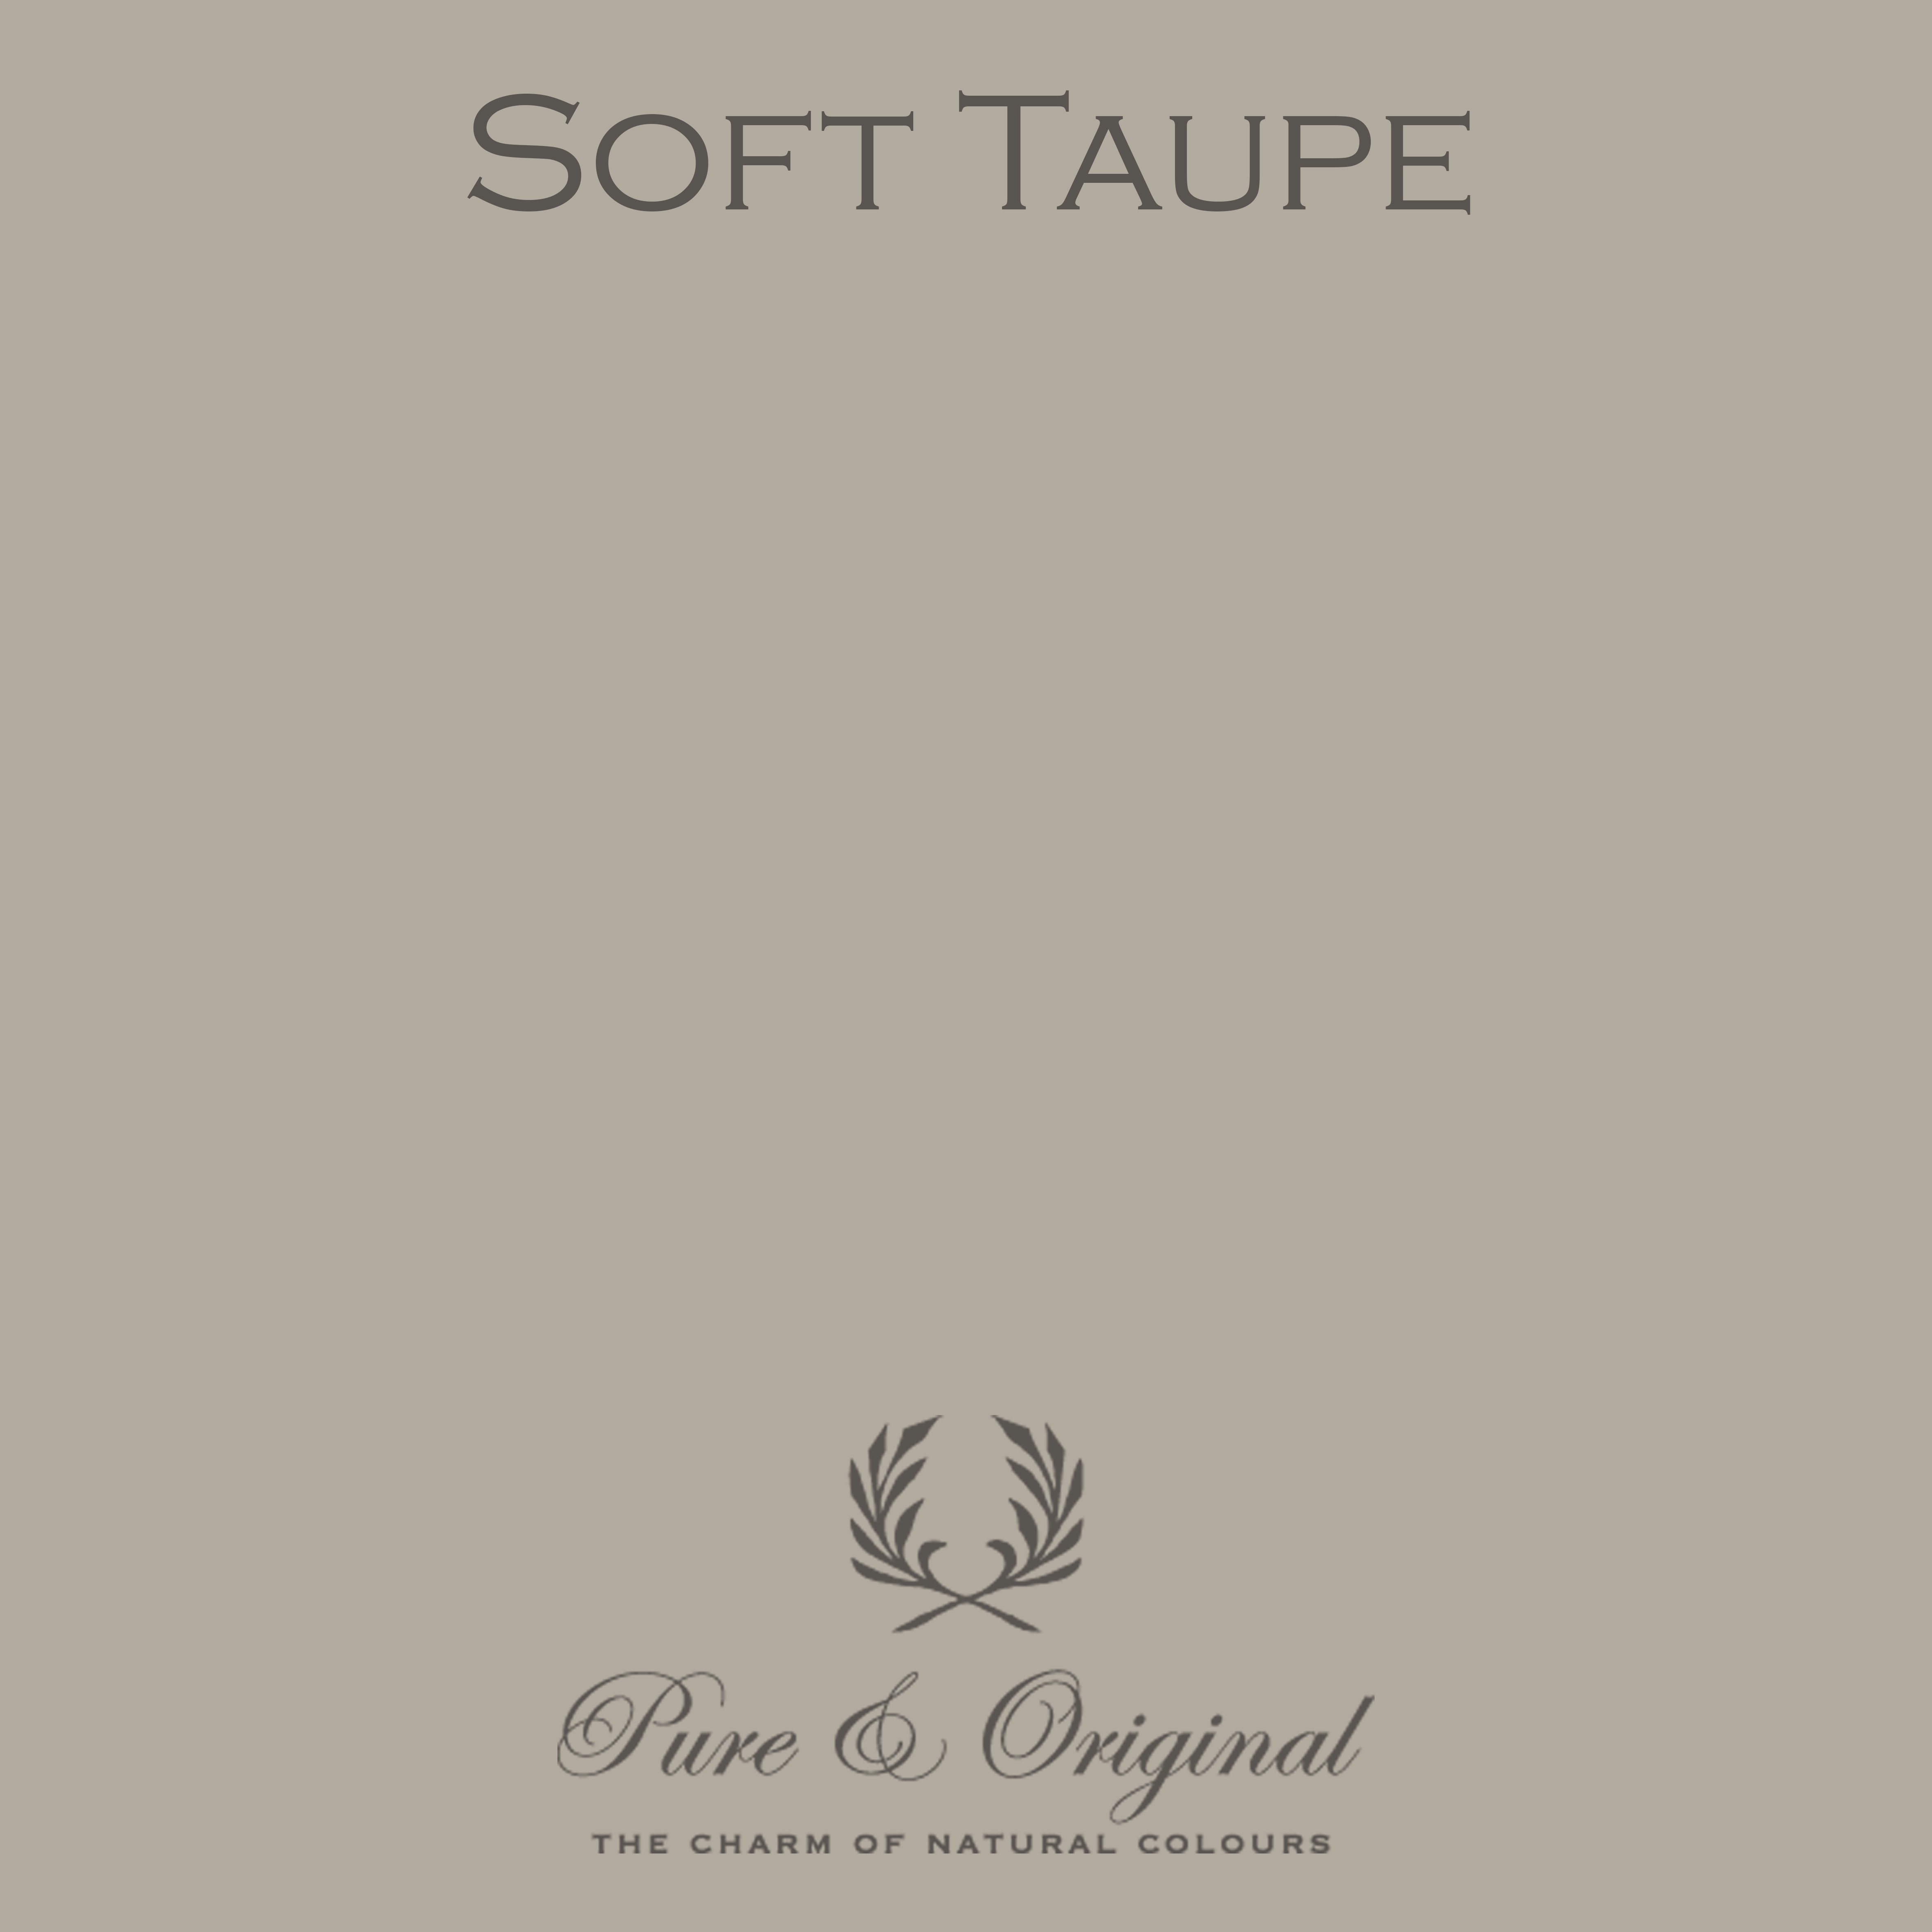 Soft Taupe